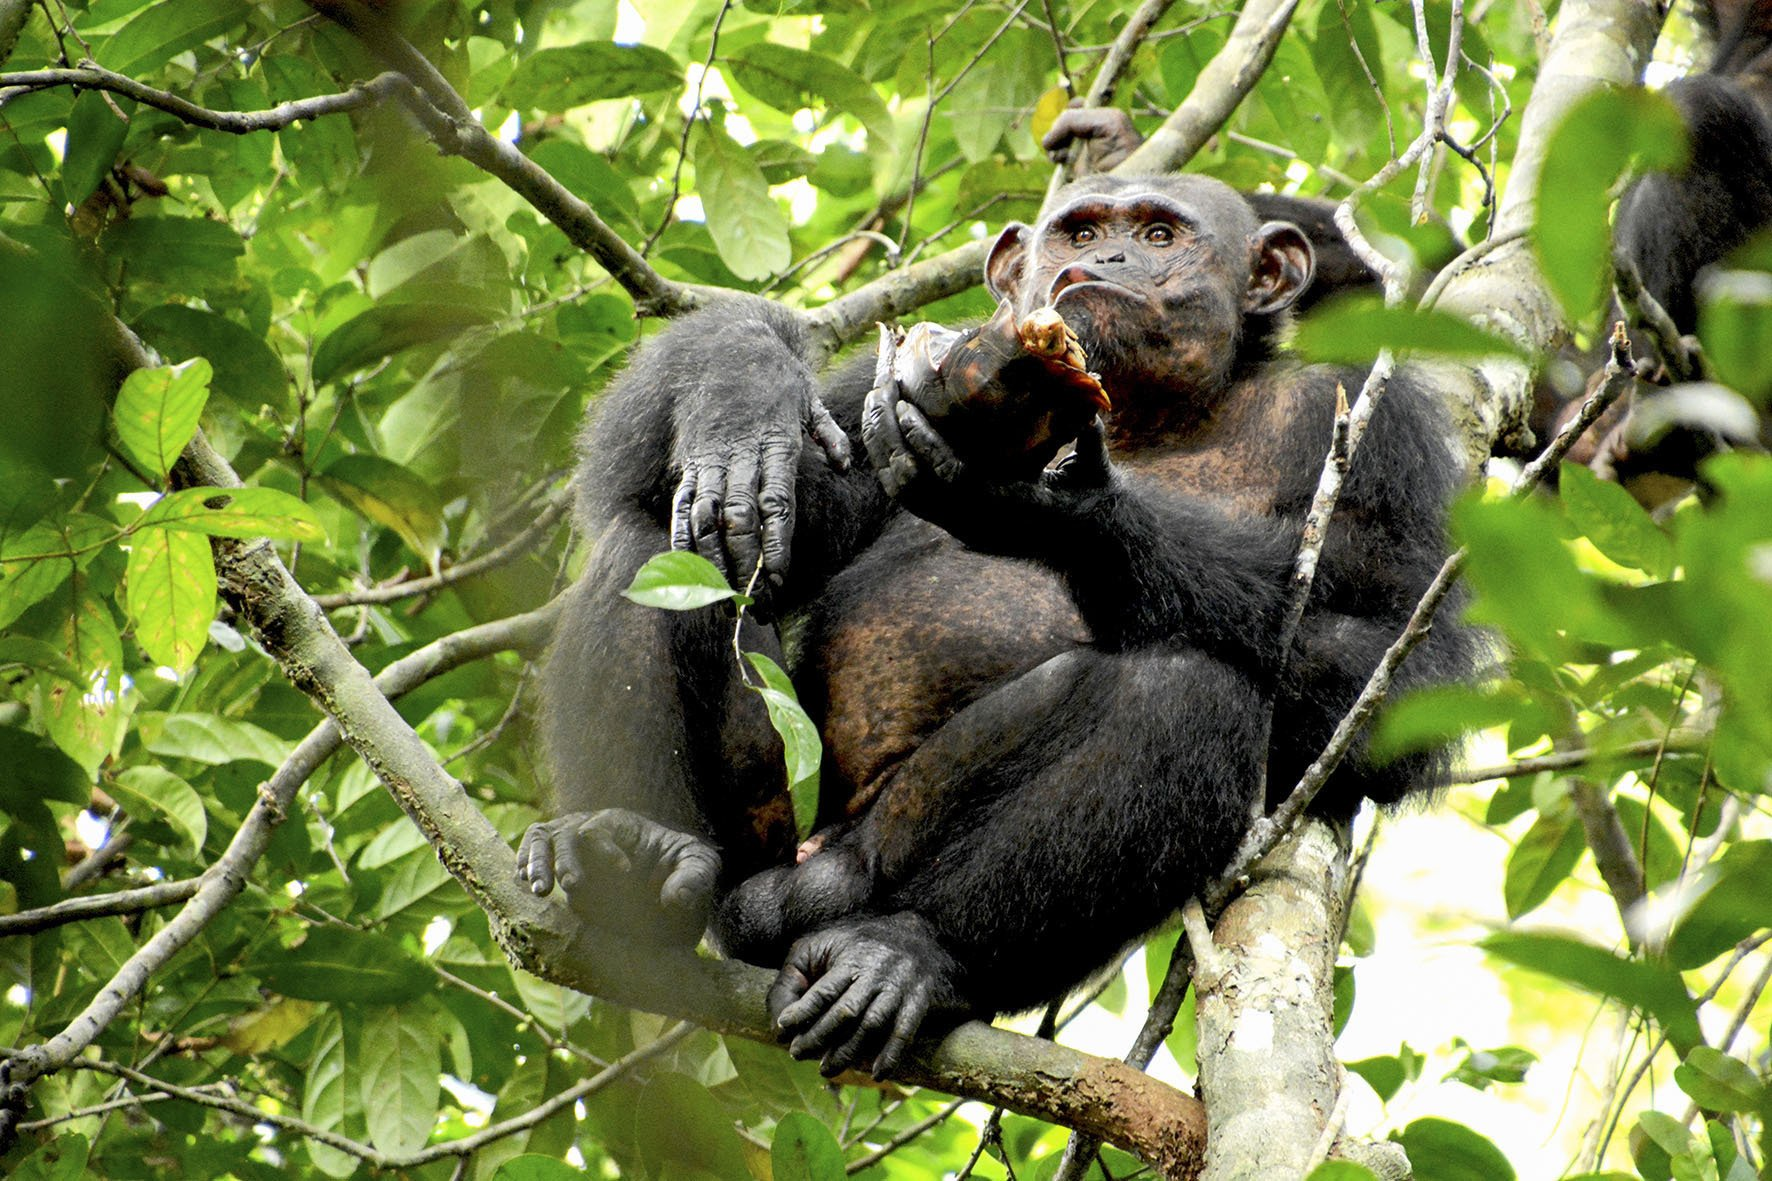 Chimpanzees spotted cracking open tortoises for meat